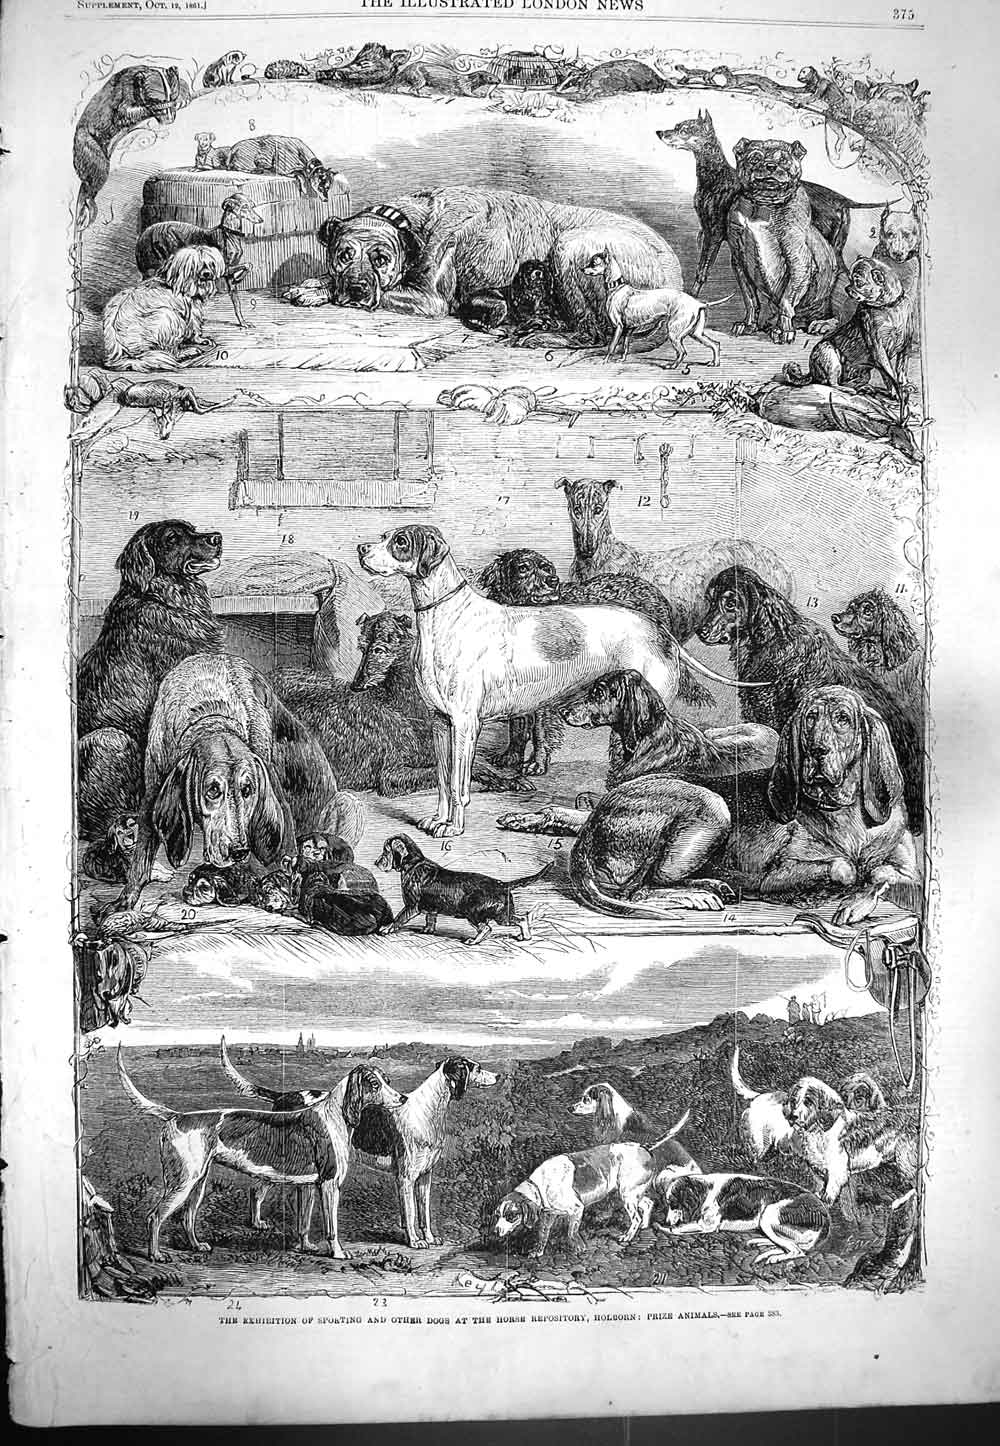 [Print 1861 Exhibition Sporting Dogs Horse Repository Holborn 375P139 Old Original]